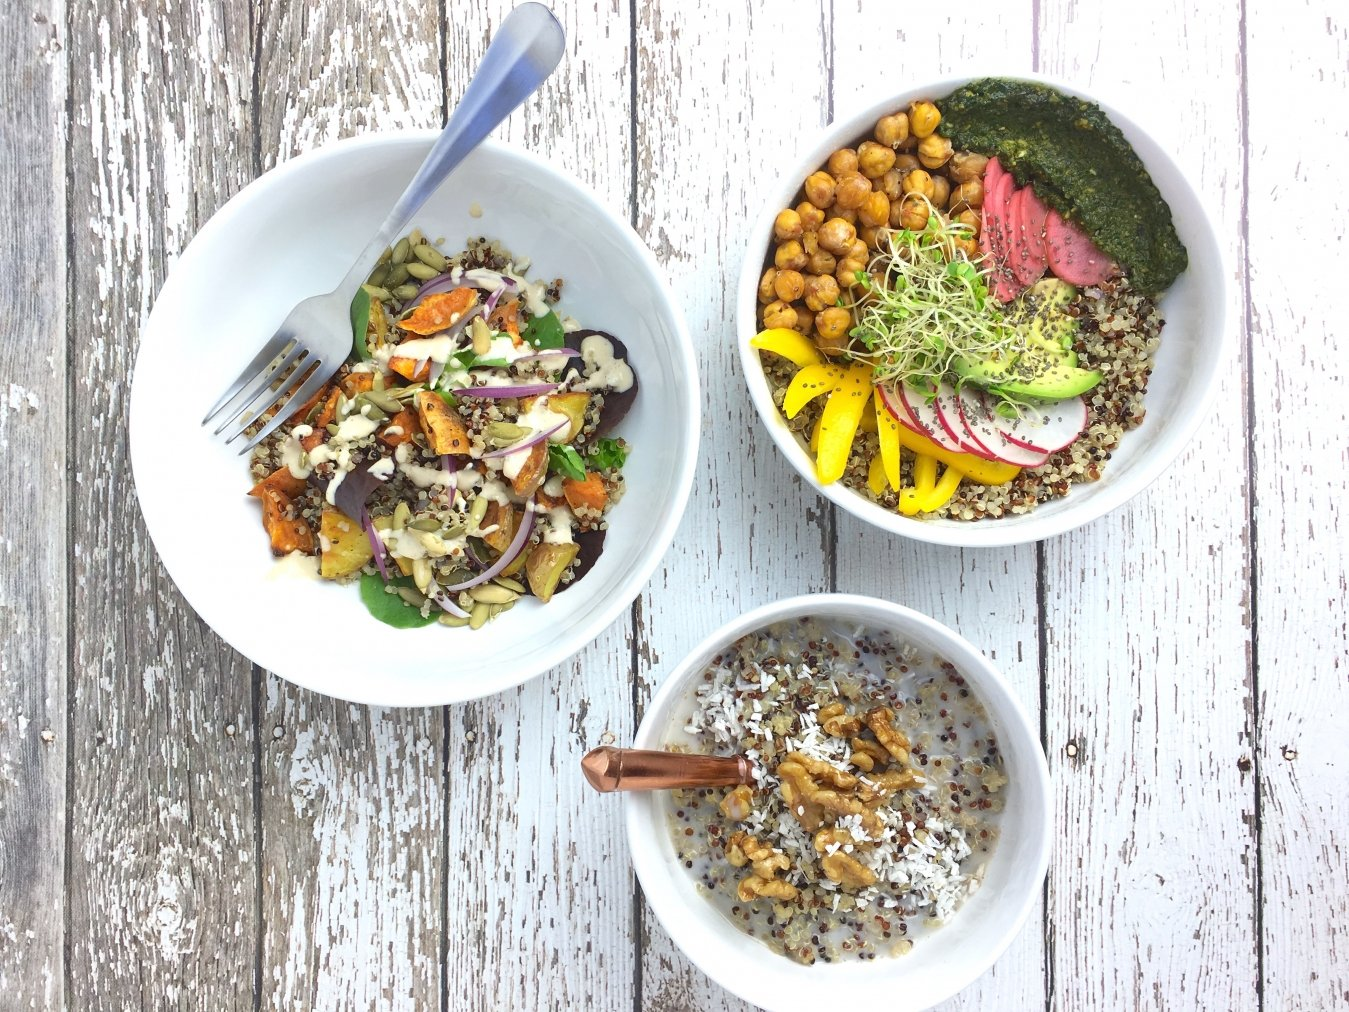 Quinoa Power Bowls by Vicki Marquez